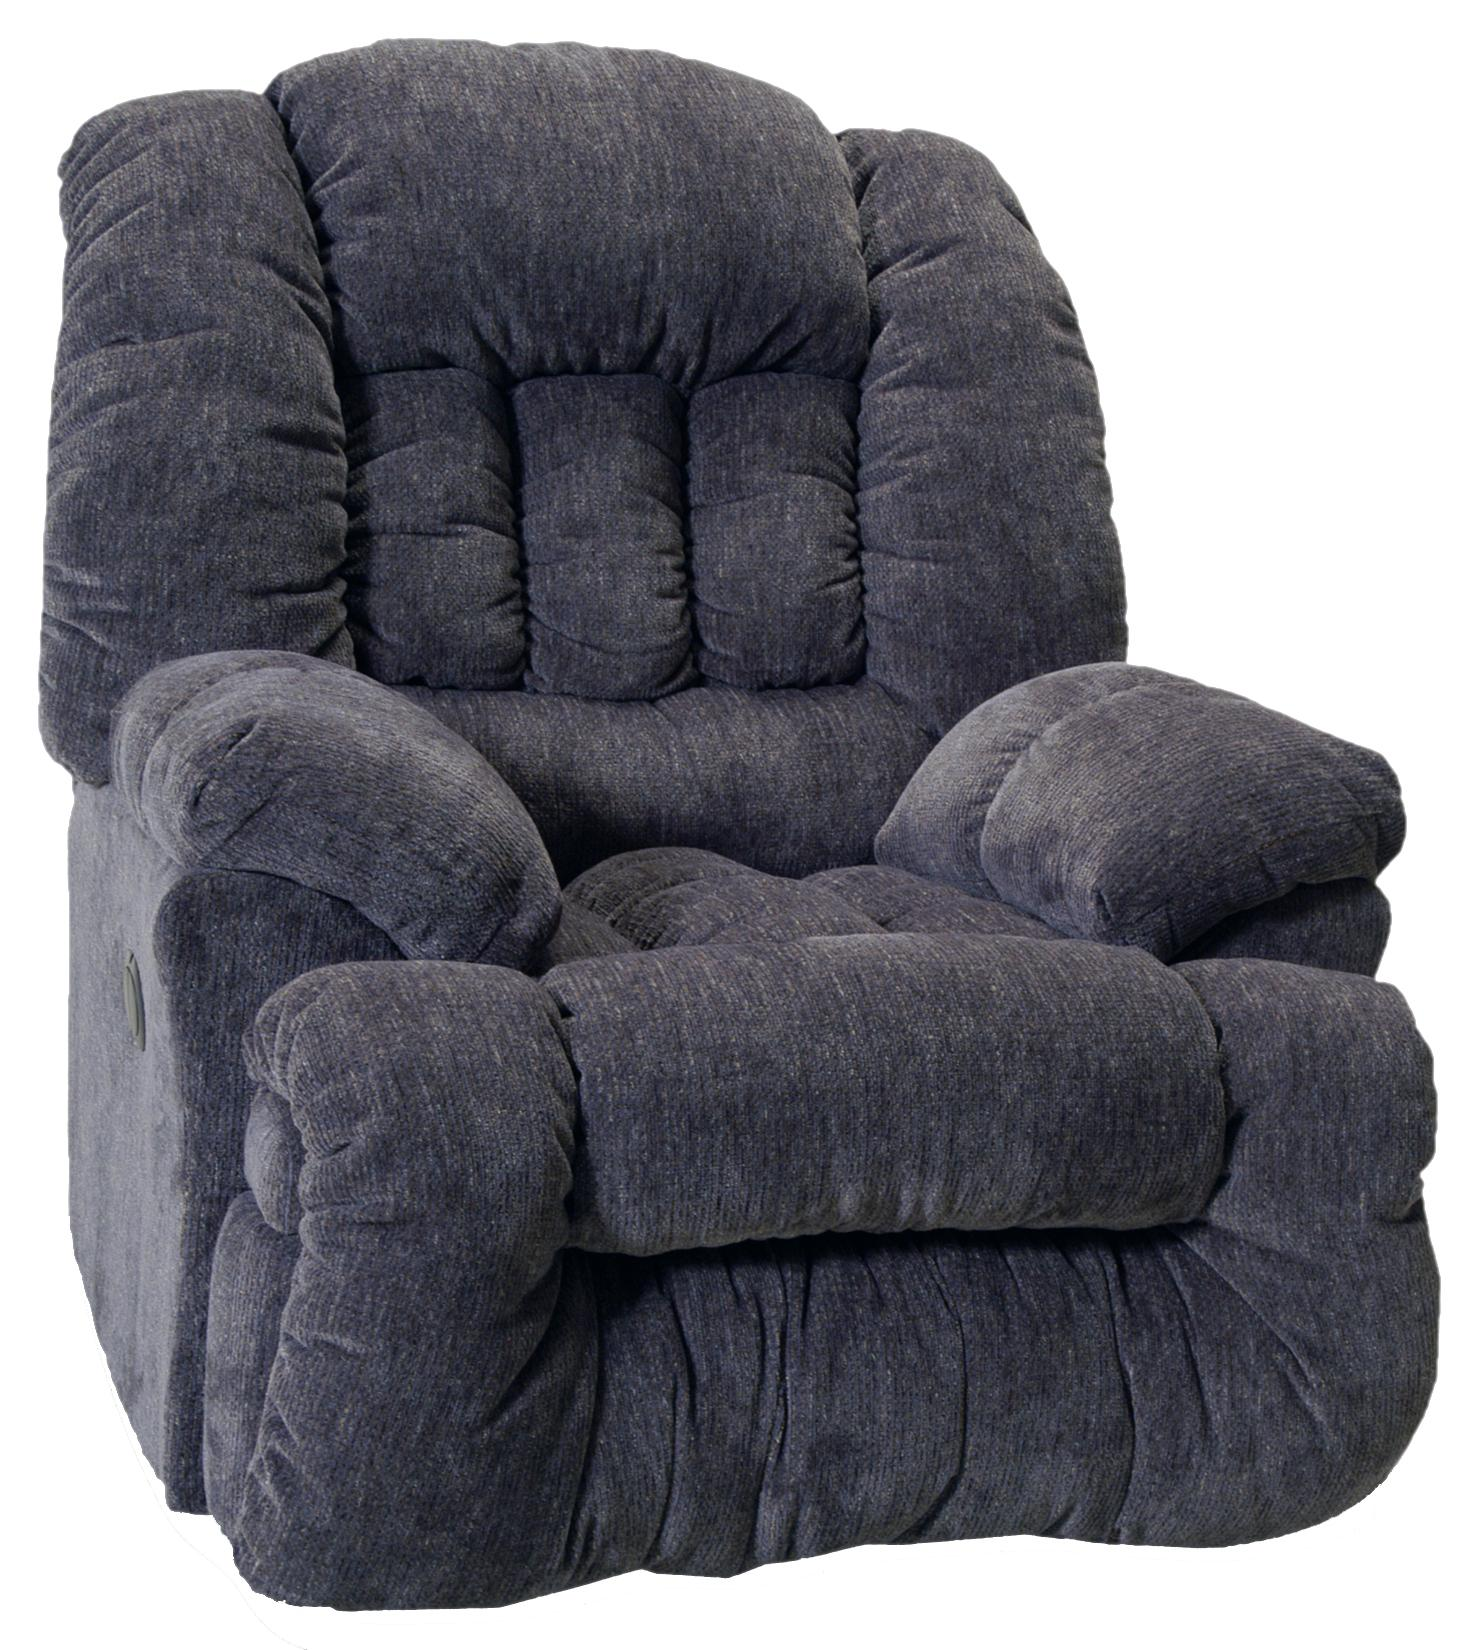 Franklin Rocker Recliners Upholstered Rocking Chair